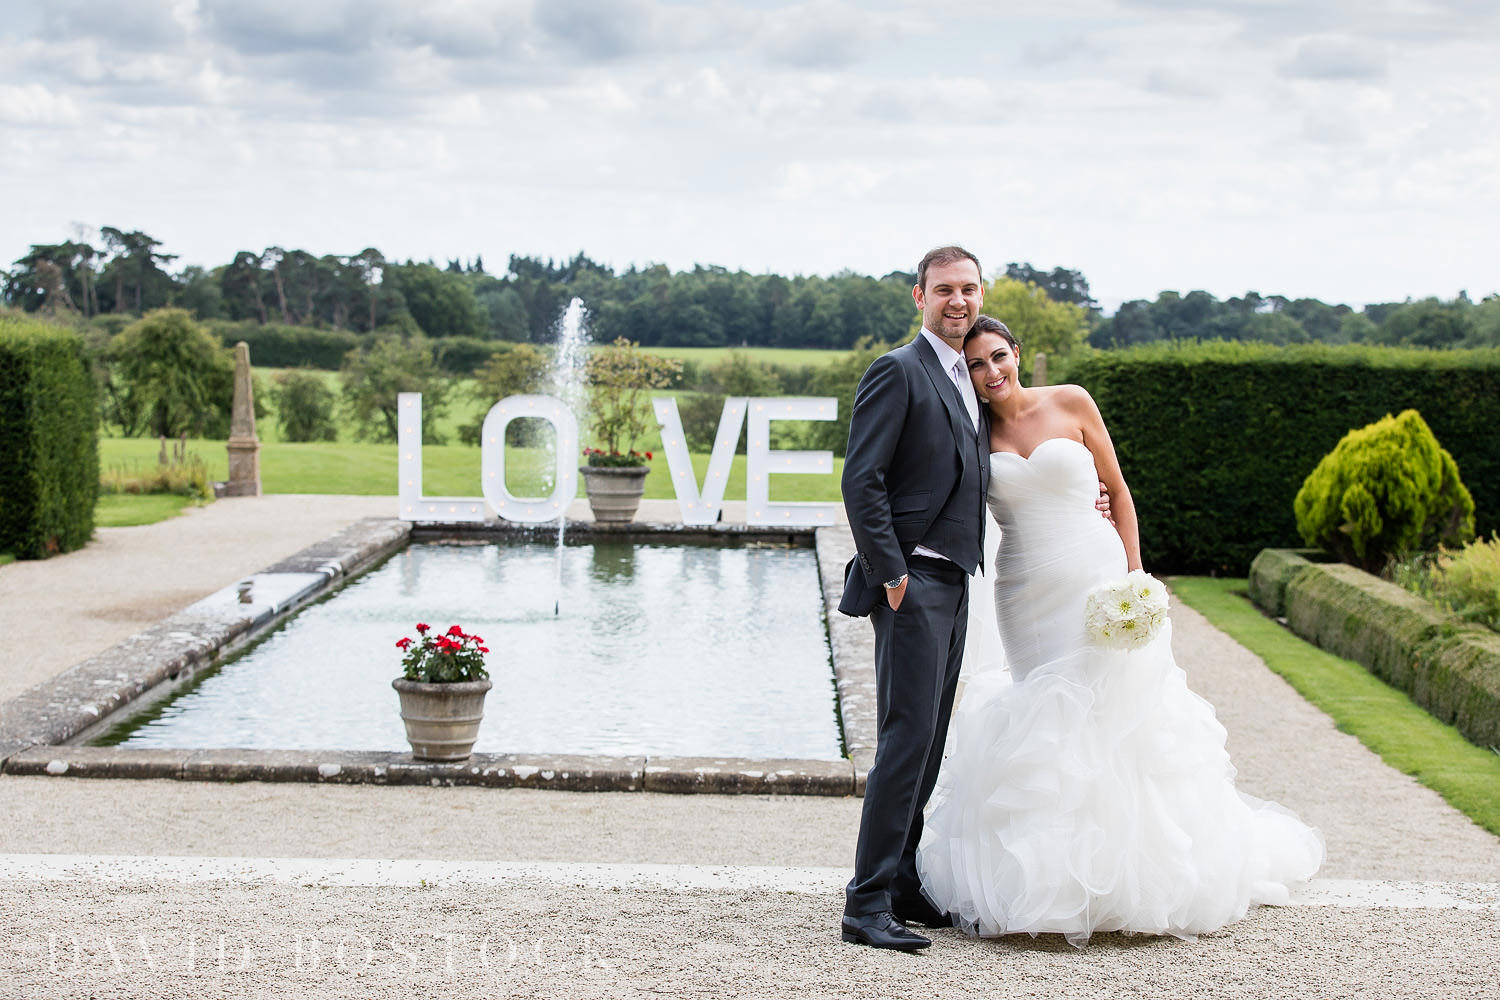 Eynsham Hall wedding photo LOVE letters sign